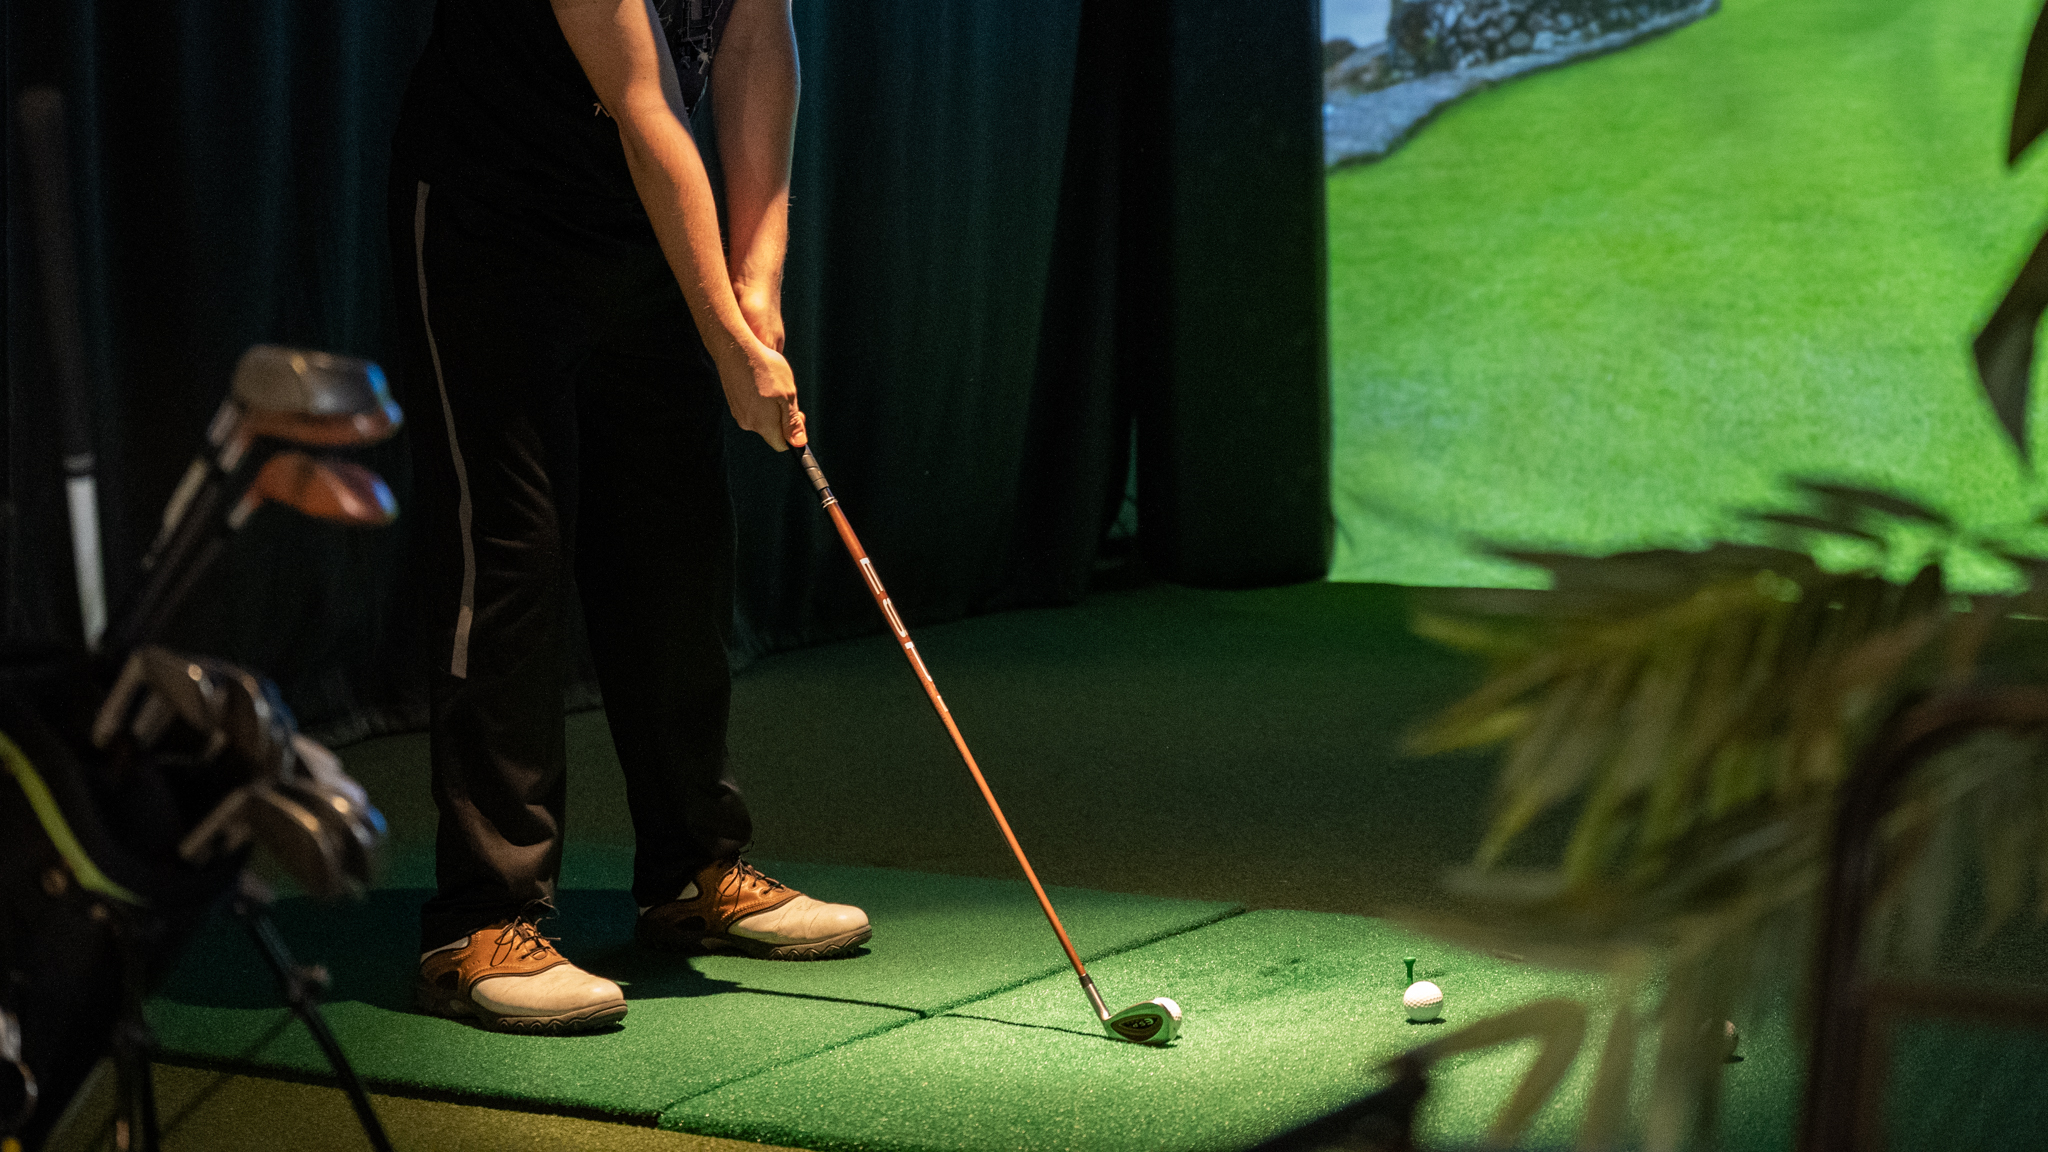 VIDEO: UNEEKOR Golf Simulators – Unboxing the QED and EYEXO